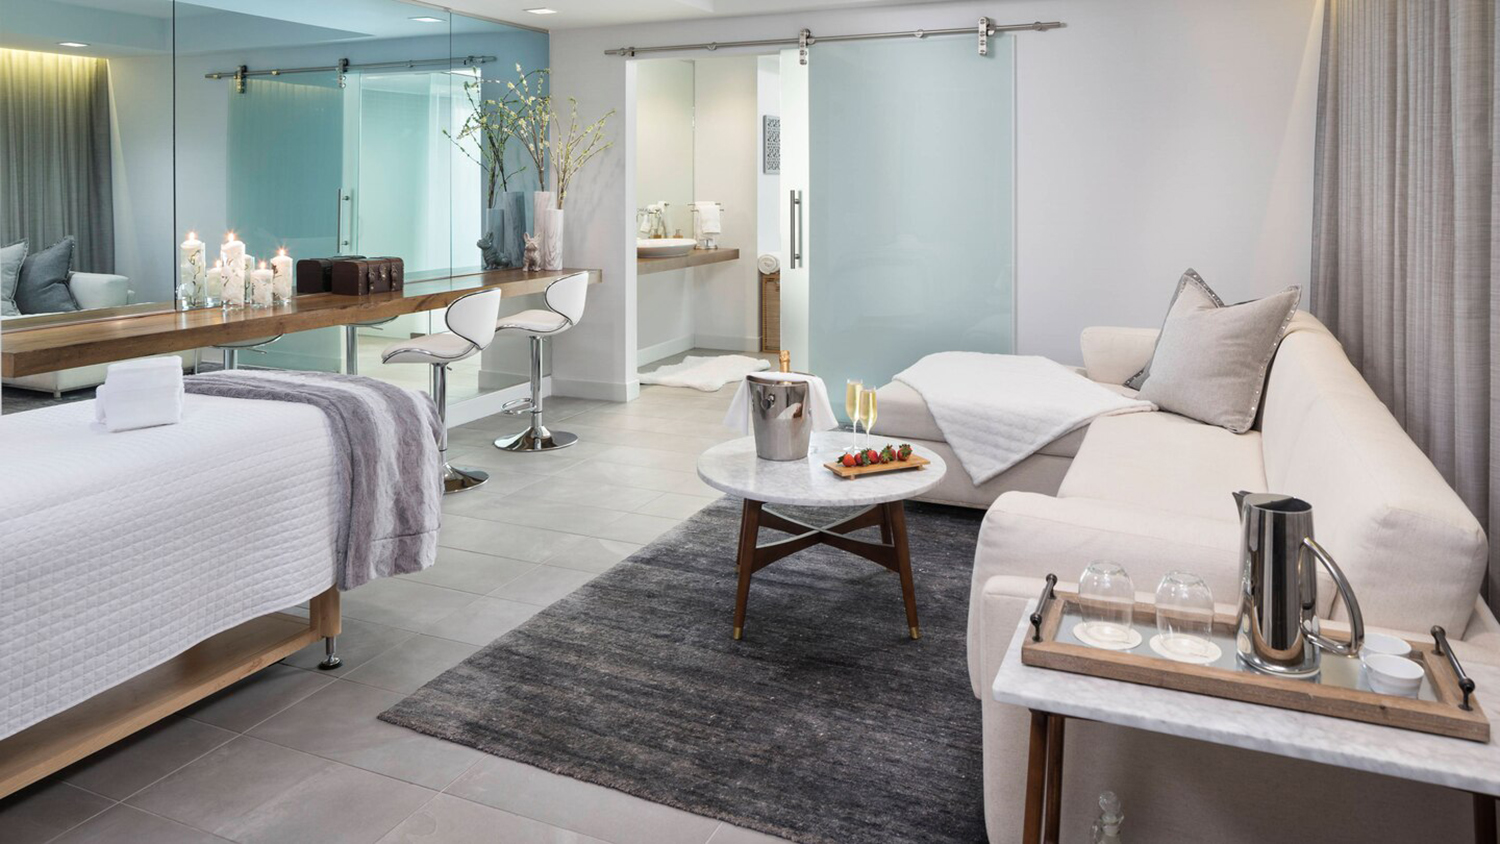 The Spa Suite treatment and relaxation area.